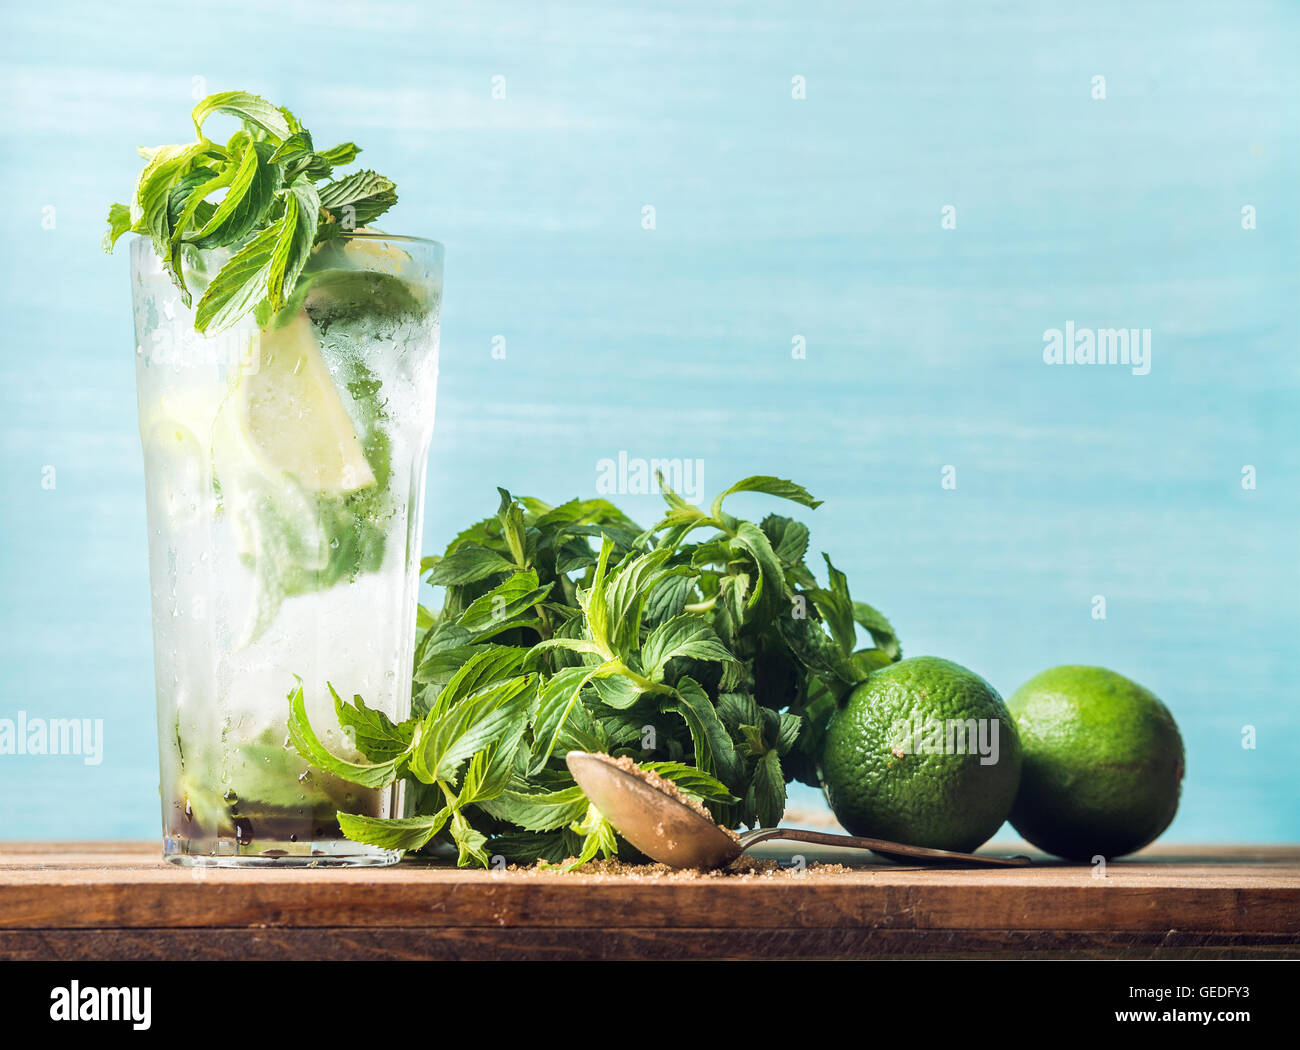 Homemade Mojito cocktail in tall glass with bunch of mint, brown sugar and limes - Stock Image